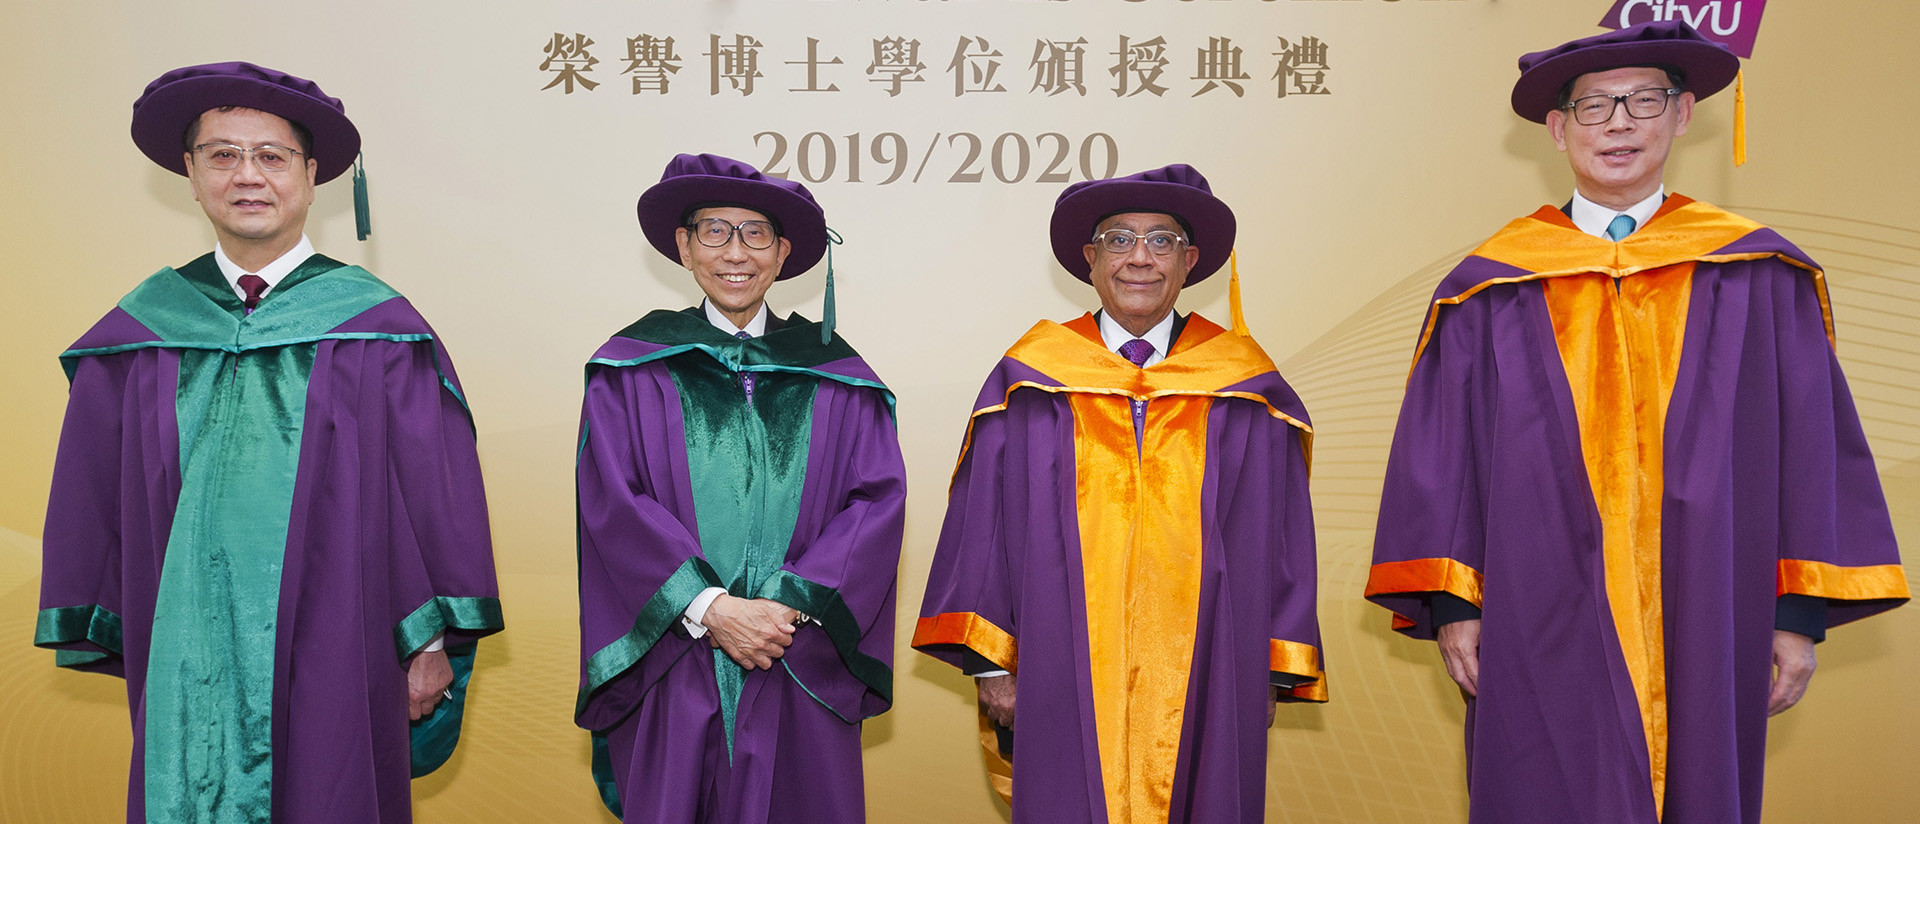 Honorary Doctorates 2019/2020